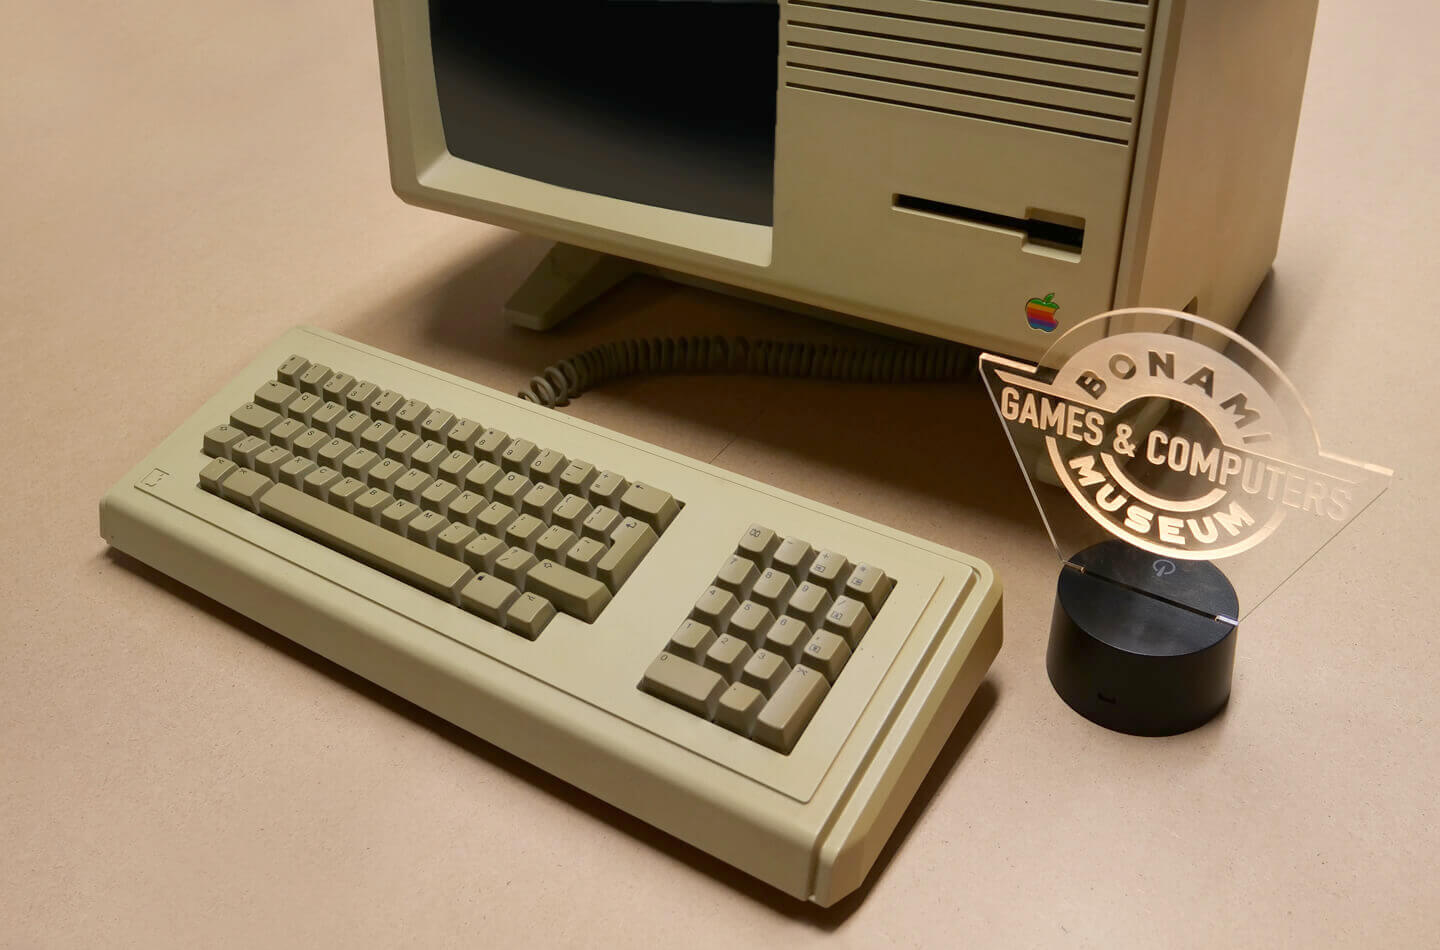 Apple computer museum Zwolle